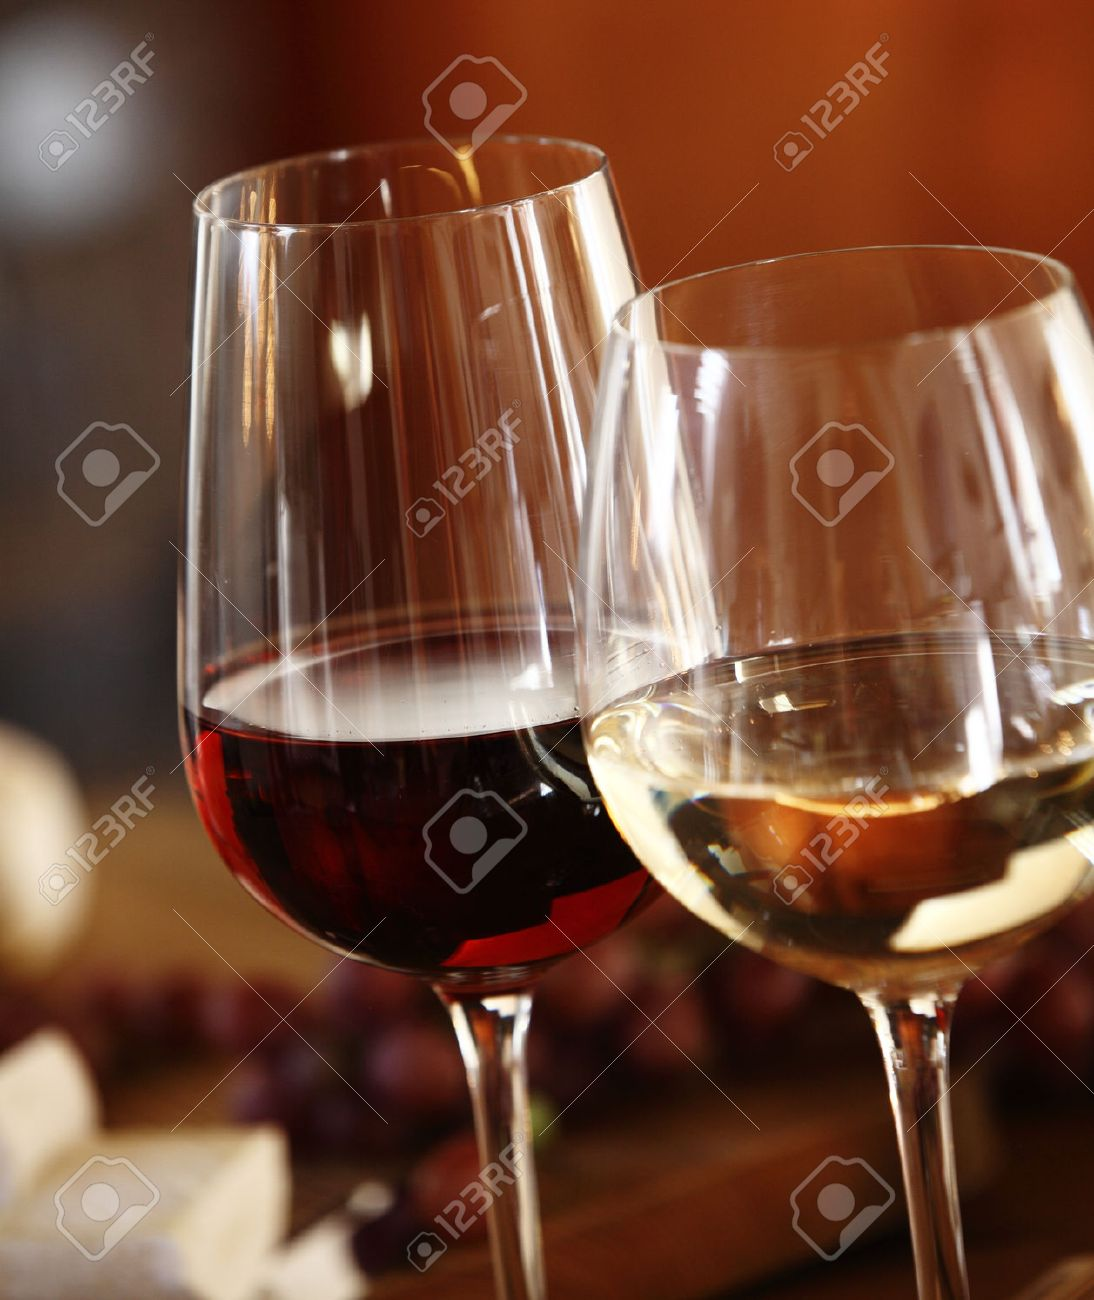 Elegant Glasses Of Red And White Wine Served Together On A Dining Table For  A Formal